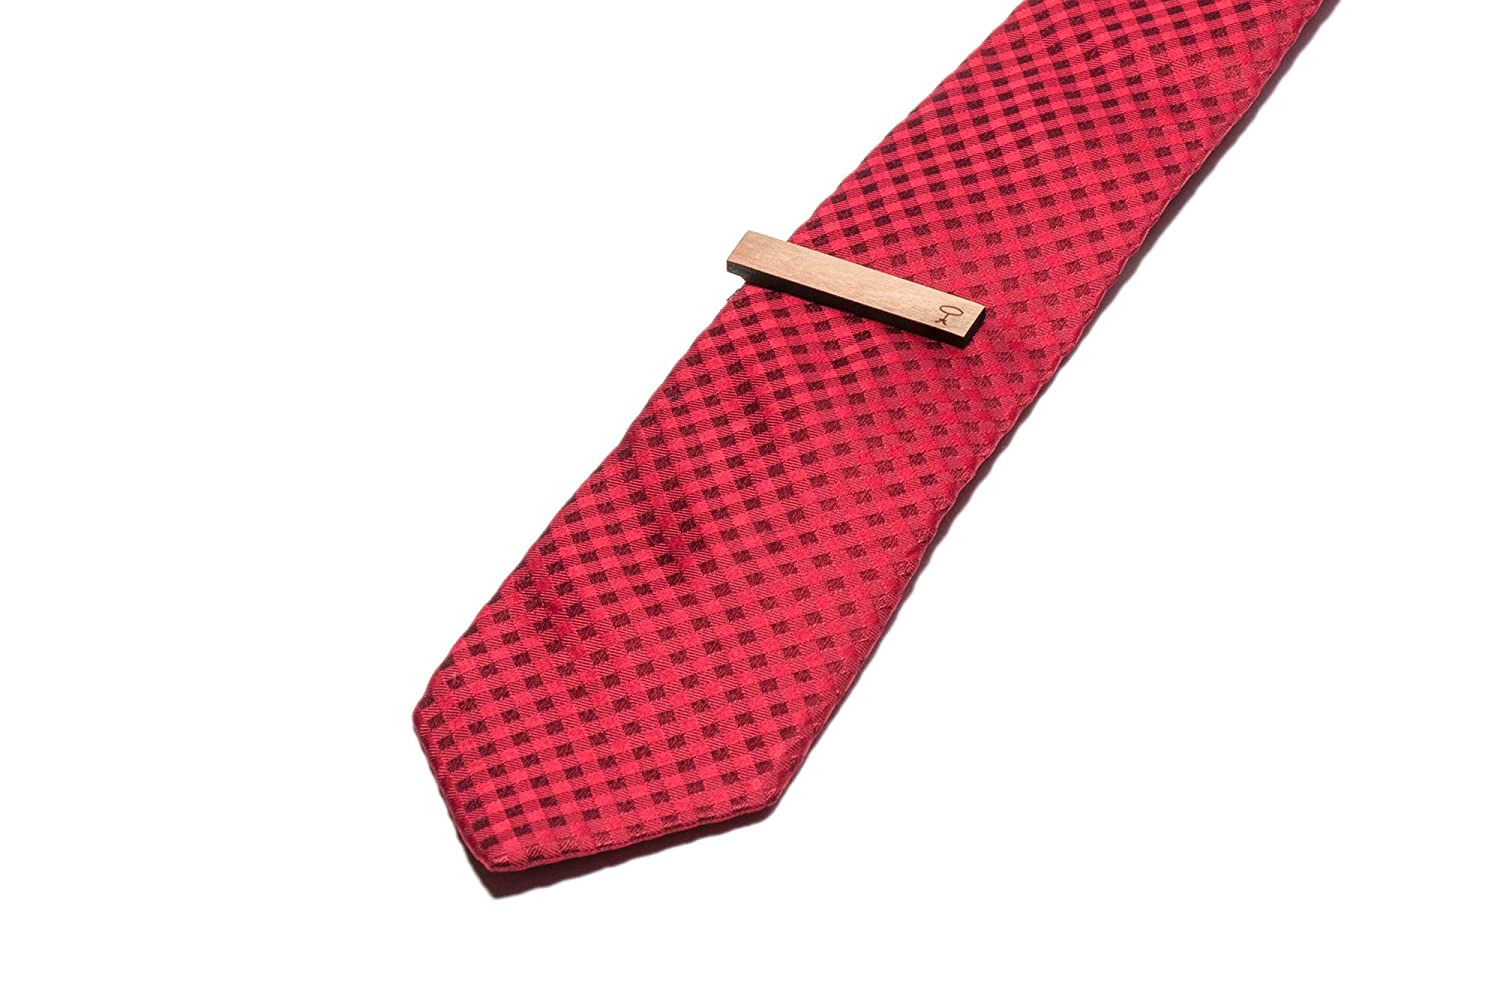 Wooden Accessories Company Wooden Tie Clips with Laser Engraved Round Table Design Cherry Wood Tie Bar Engraved in The USA